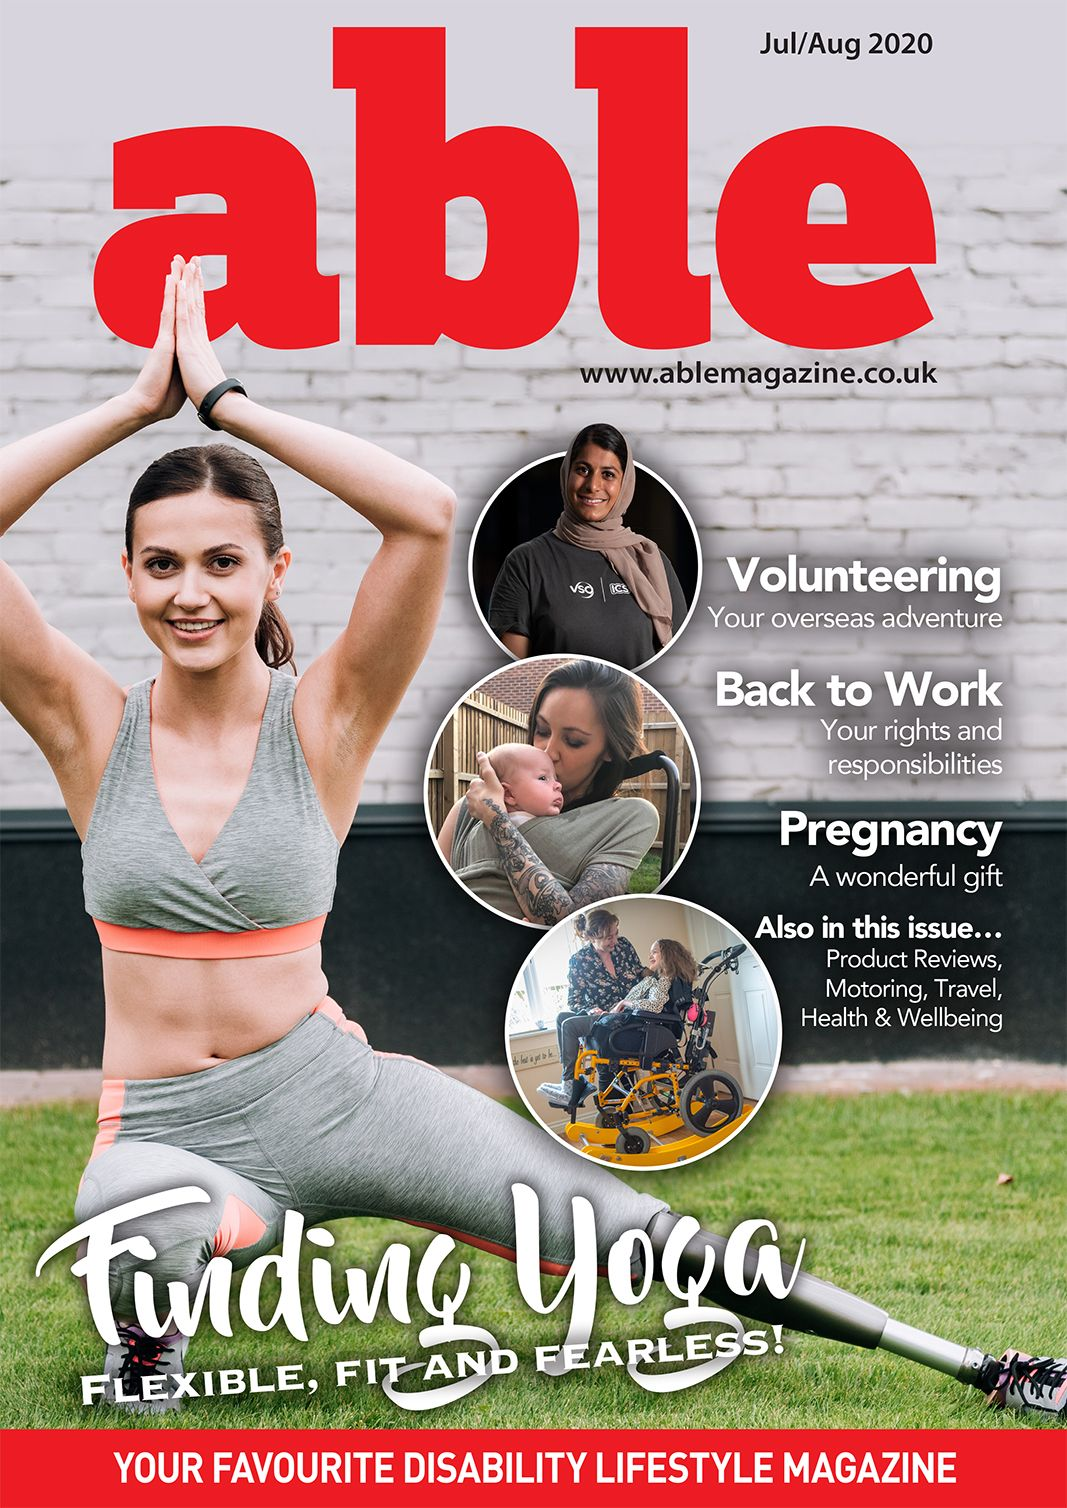 Picture of the Able Magazine July cover.